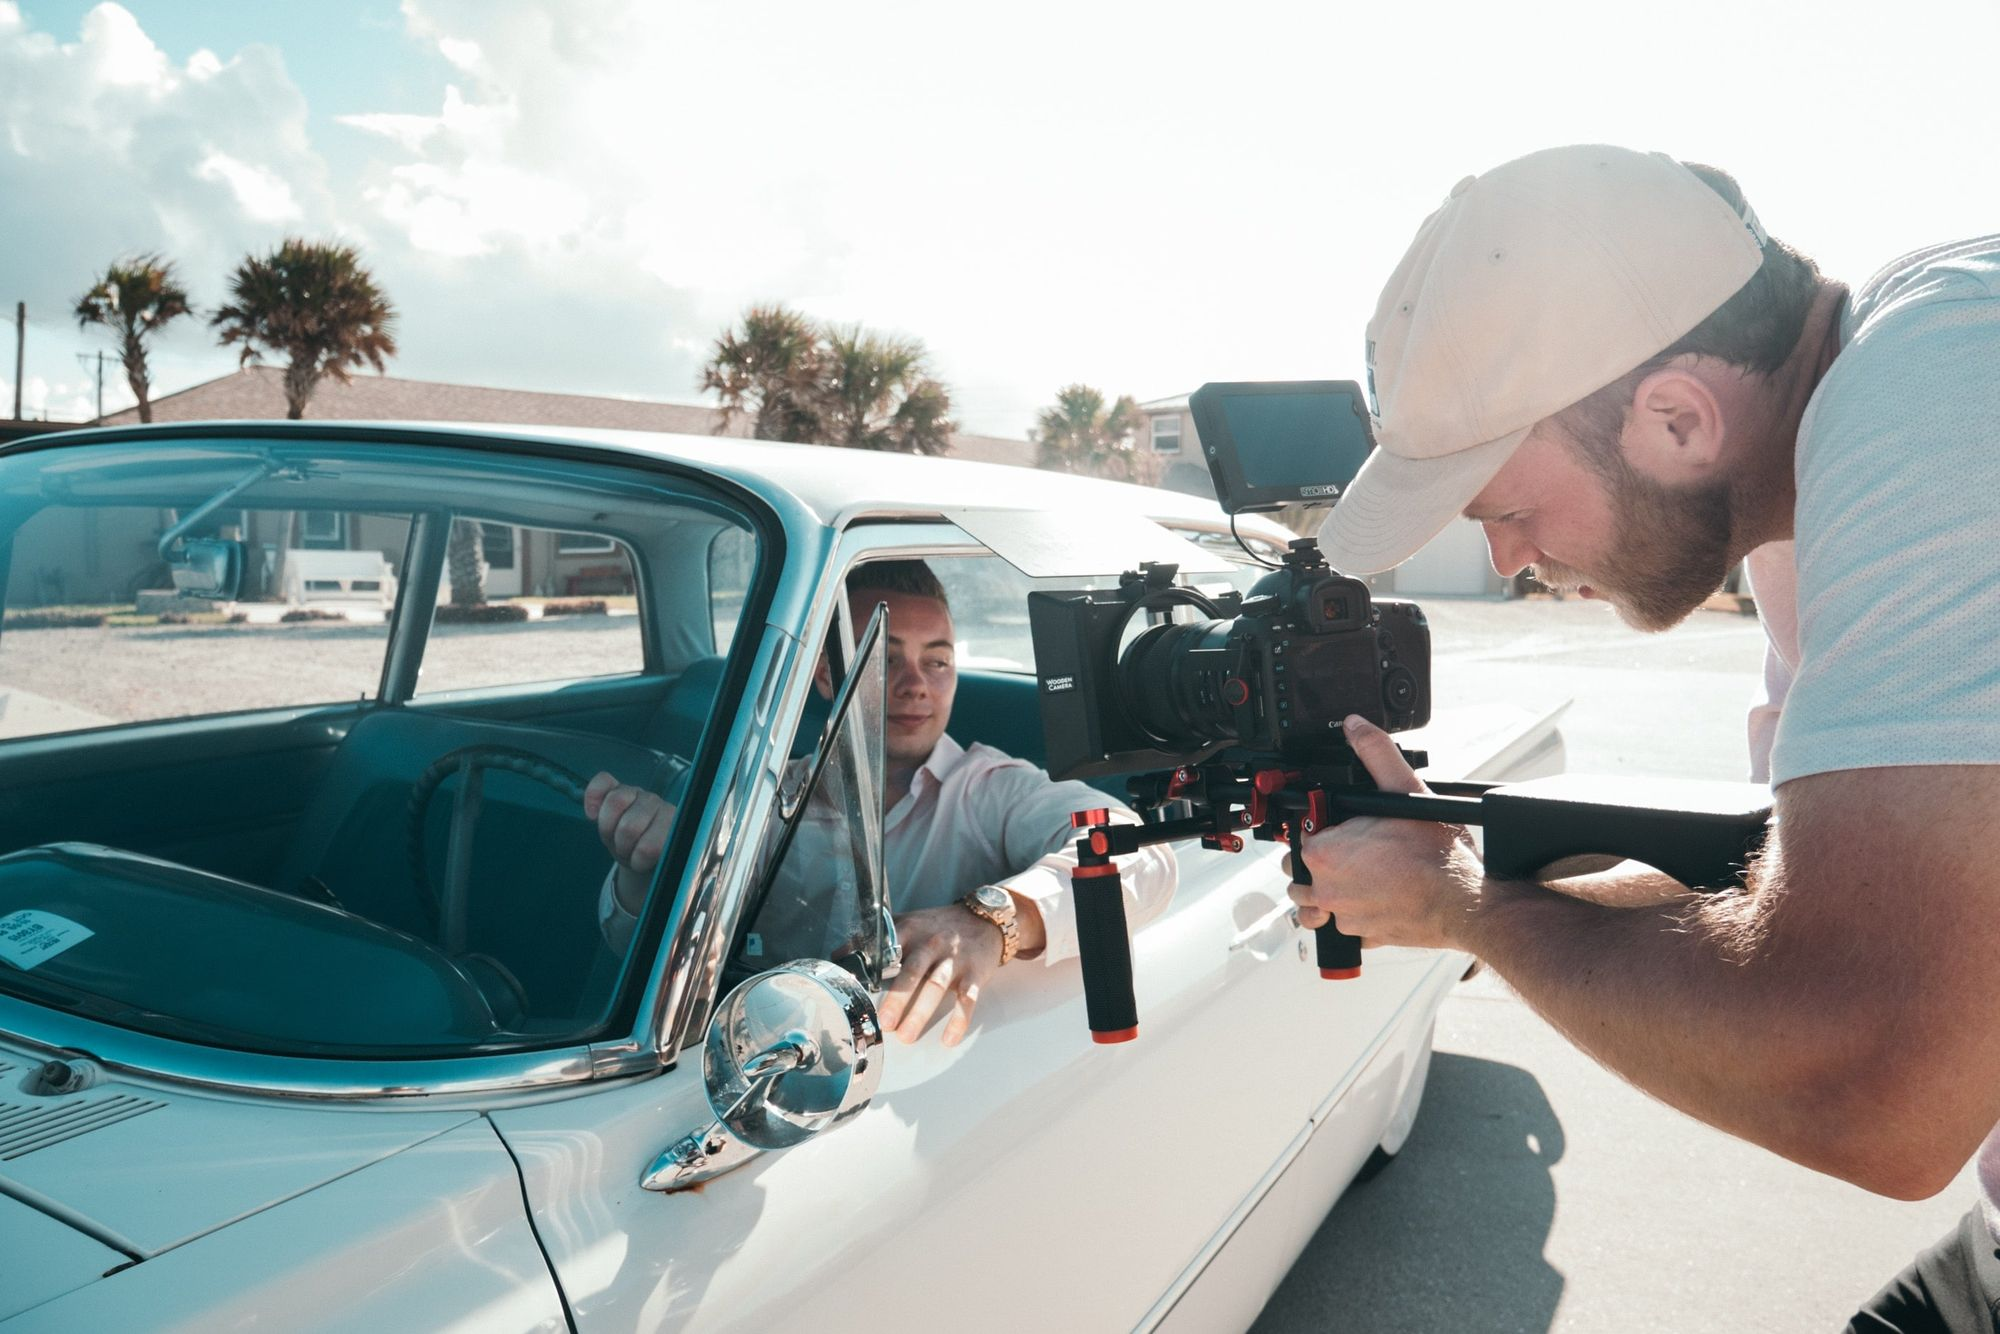 Get started as a cinematographer